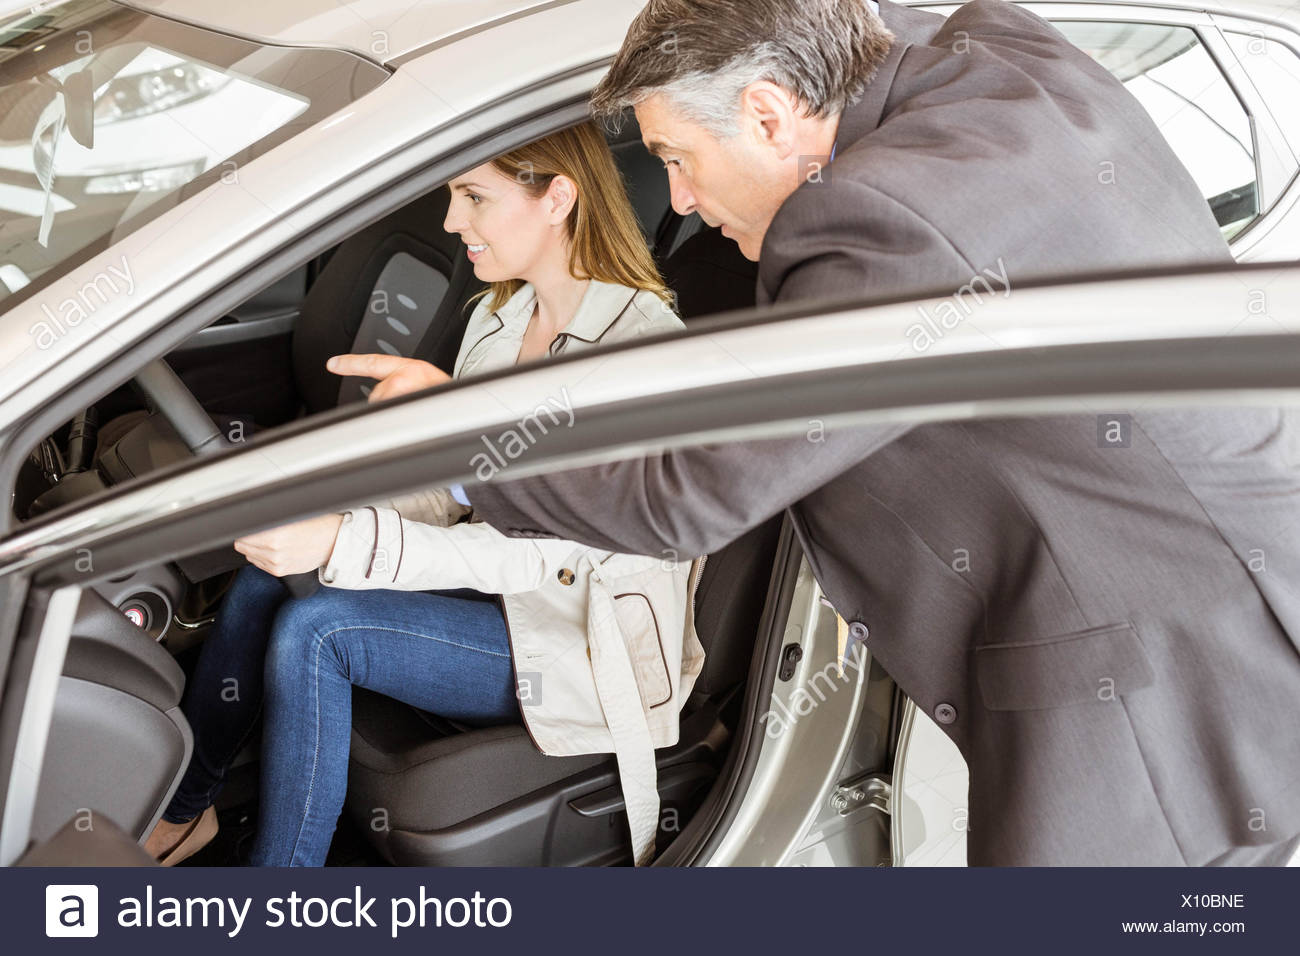 Salesman showing somethings to a customer - Stock Image